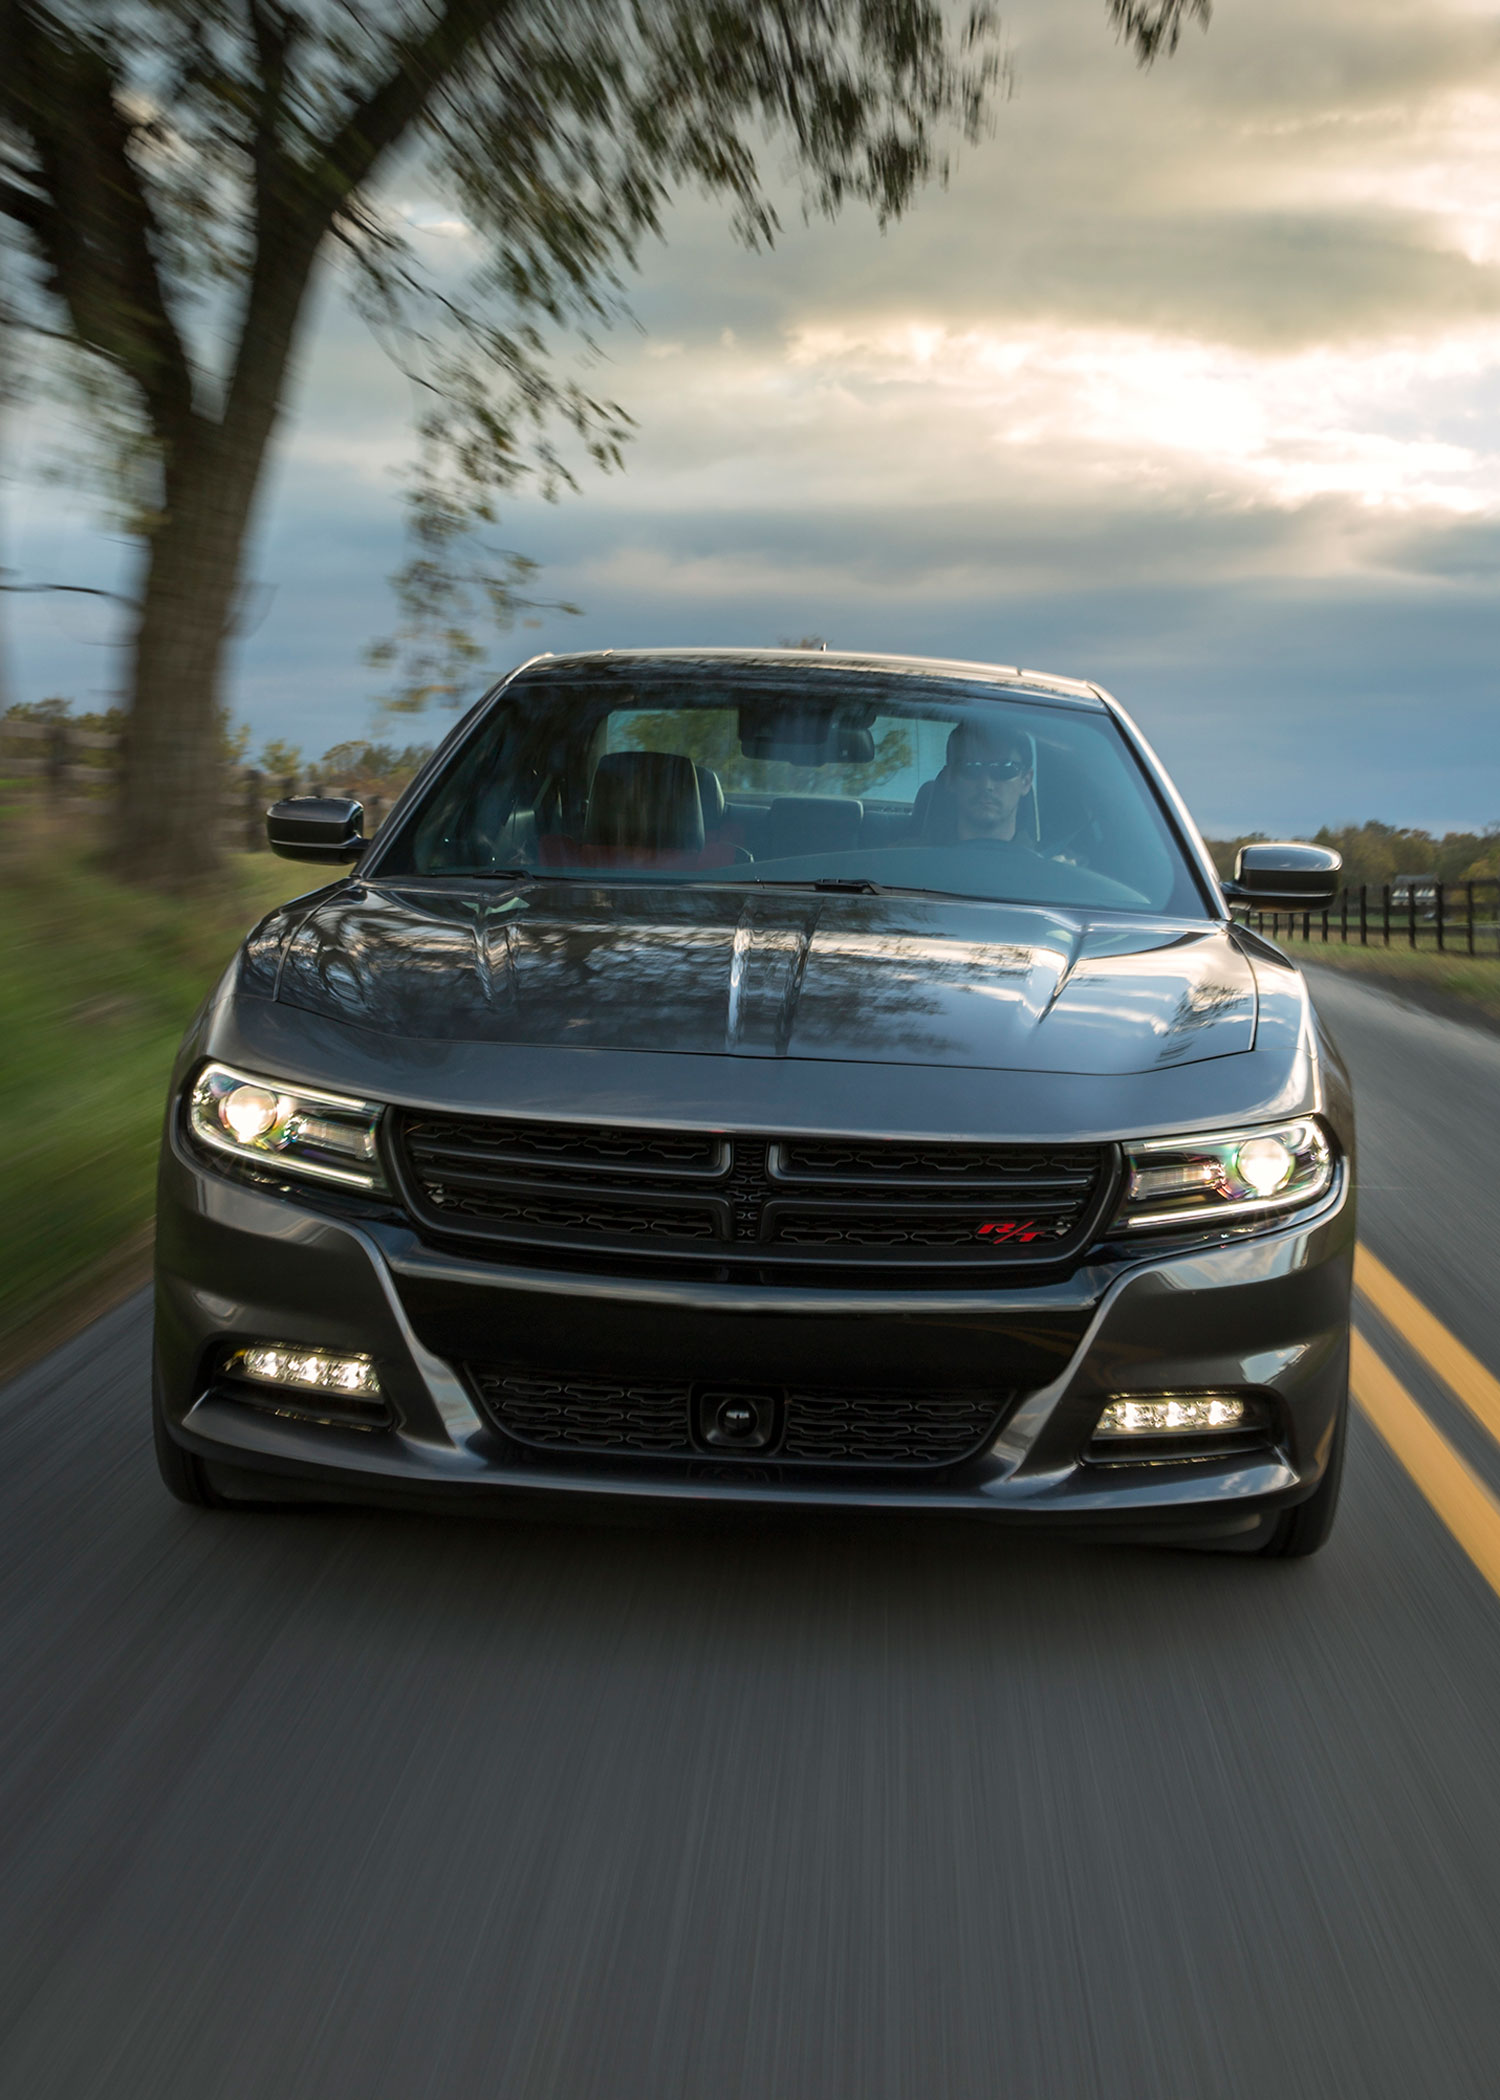 Gt Charger: Flavors Of Fast: 2015 Dodge Charger Hellcat Vs. 2016